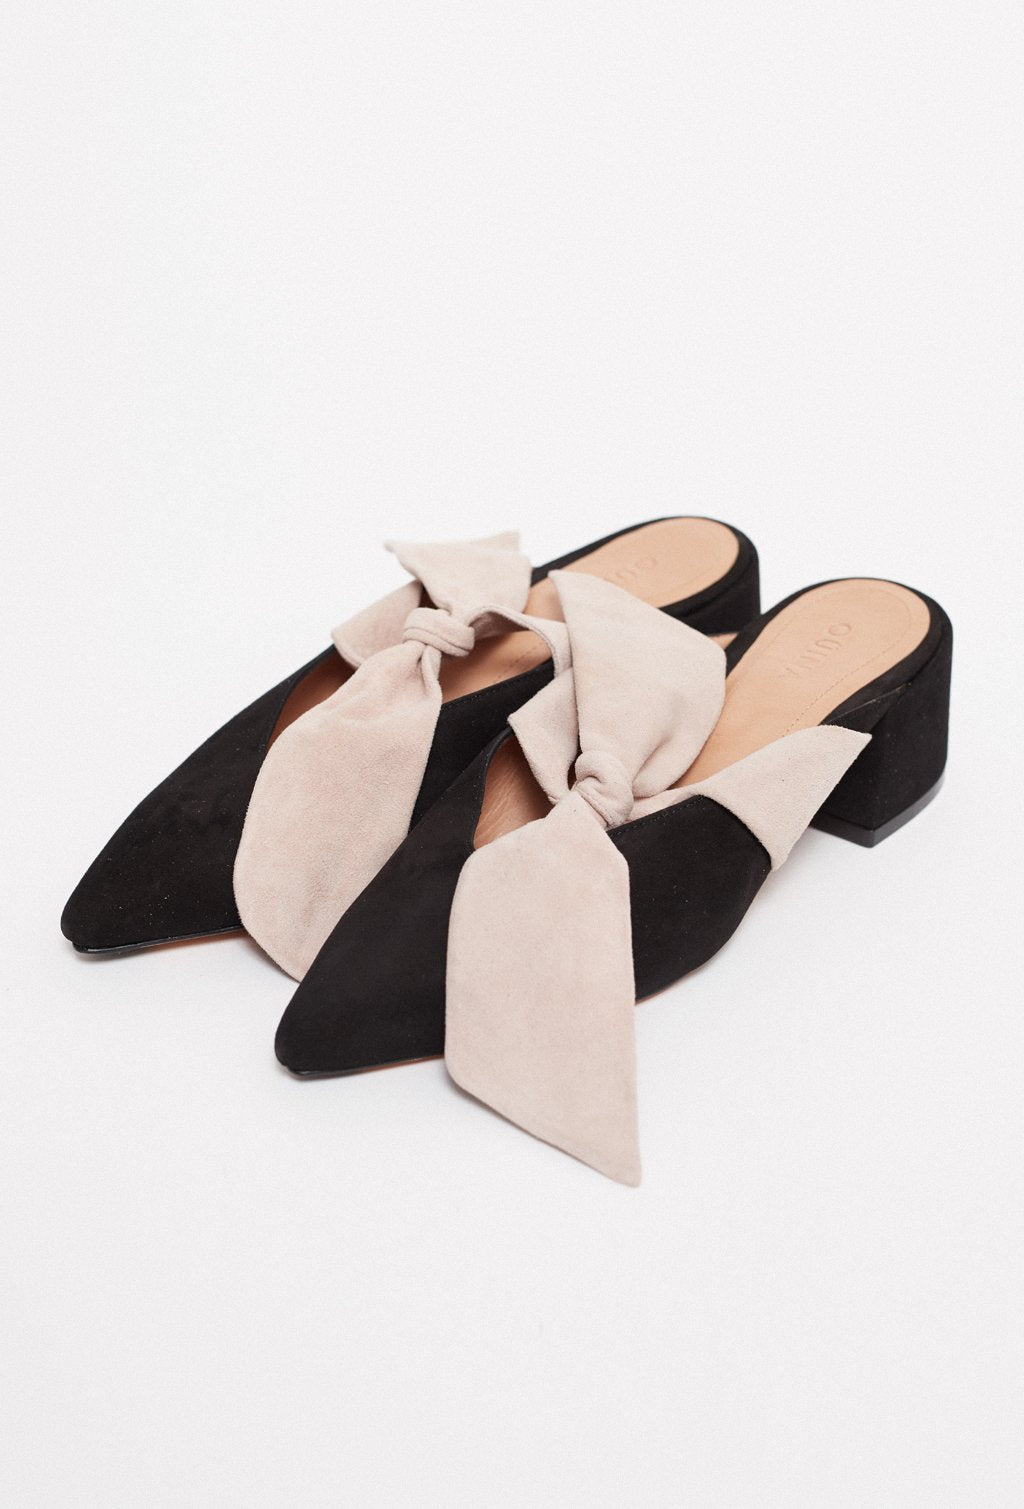 ISIDORA SQUARE HEEL BLACK SHOES